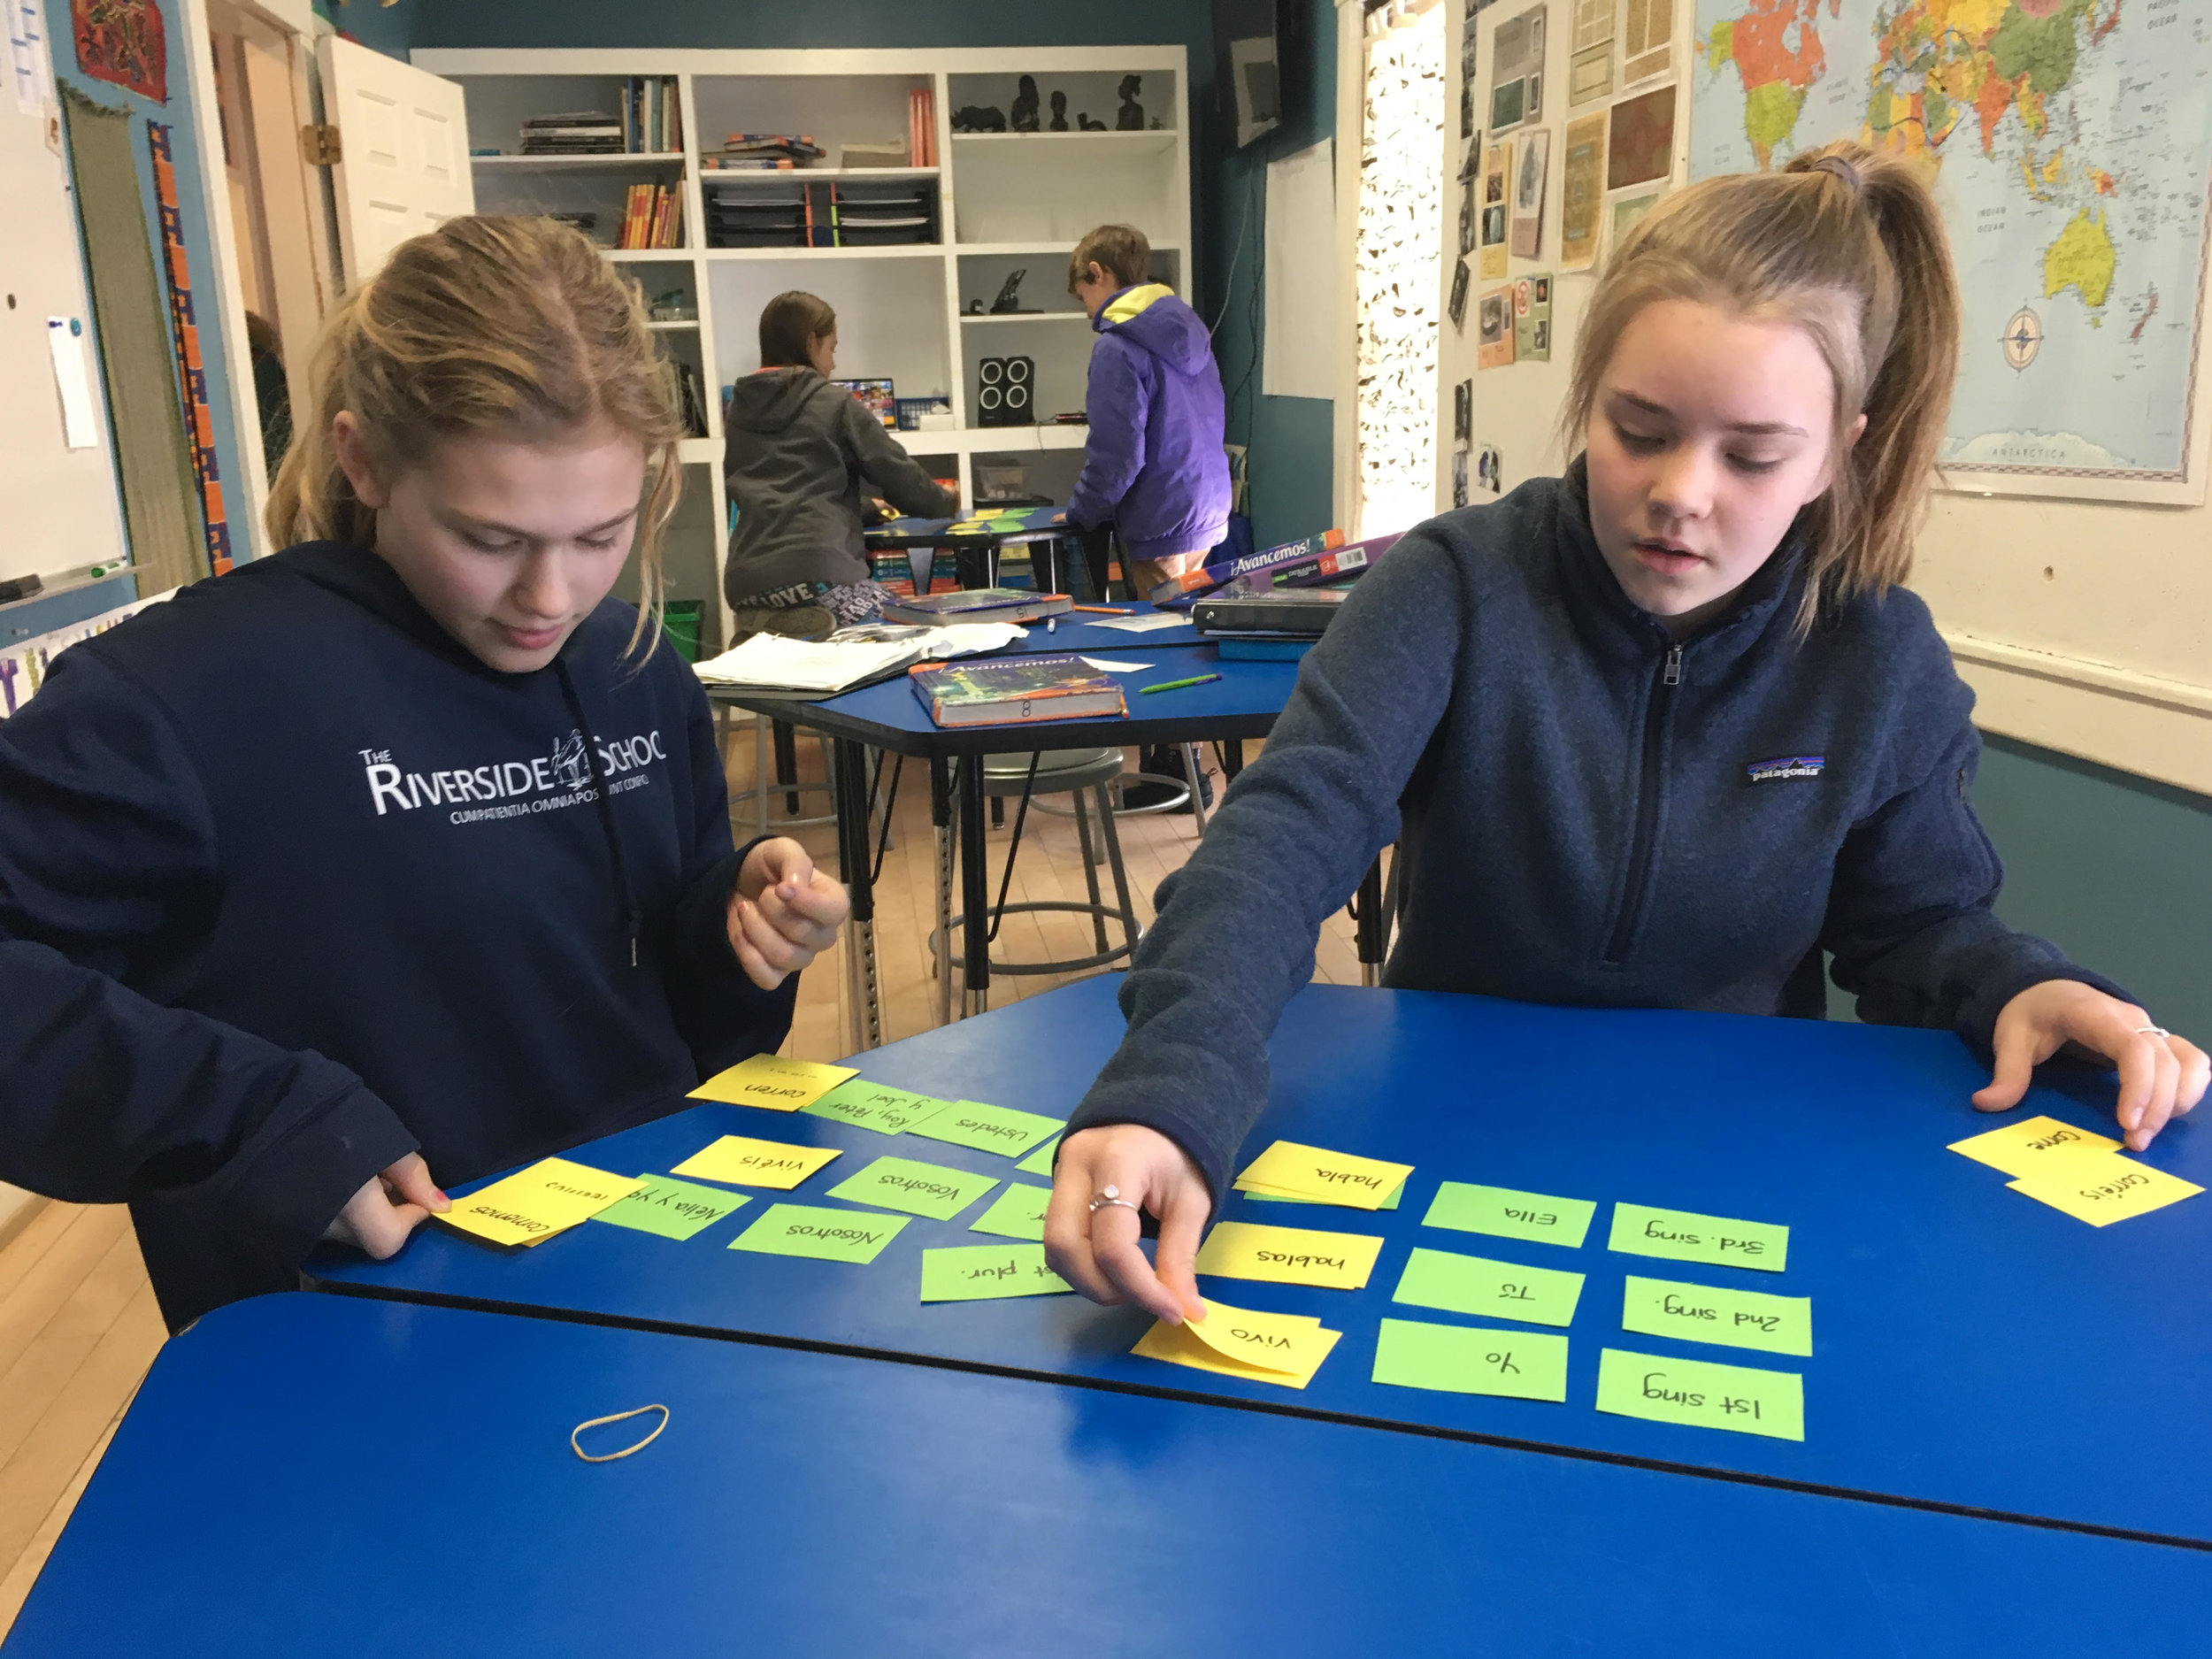 7th graders Lacey Patoine and Lila Cobb sorted out Spanish verb conjugations in their class with Nelia recently.